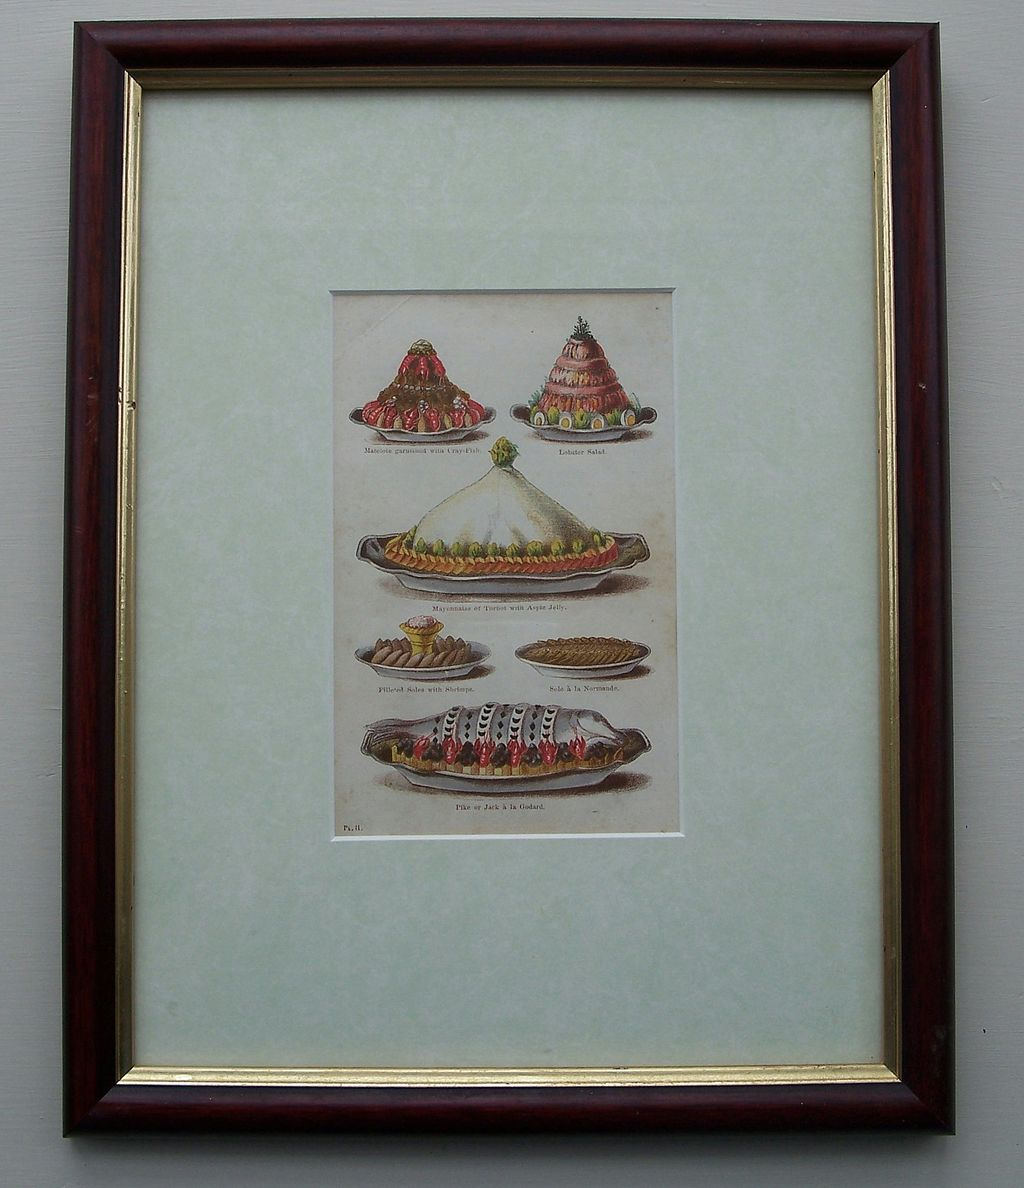 Hand-Colored Book Plate - Fish and Seafood